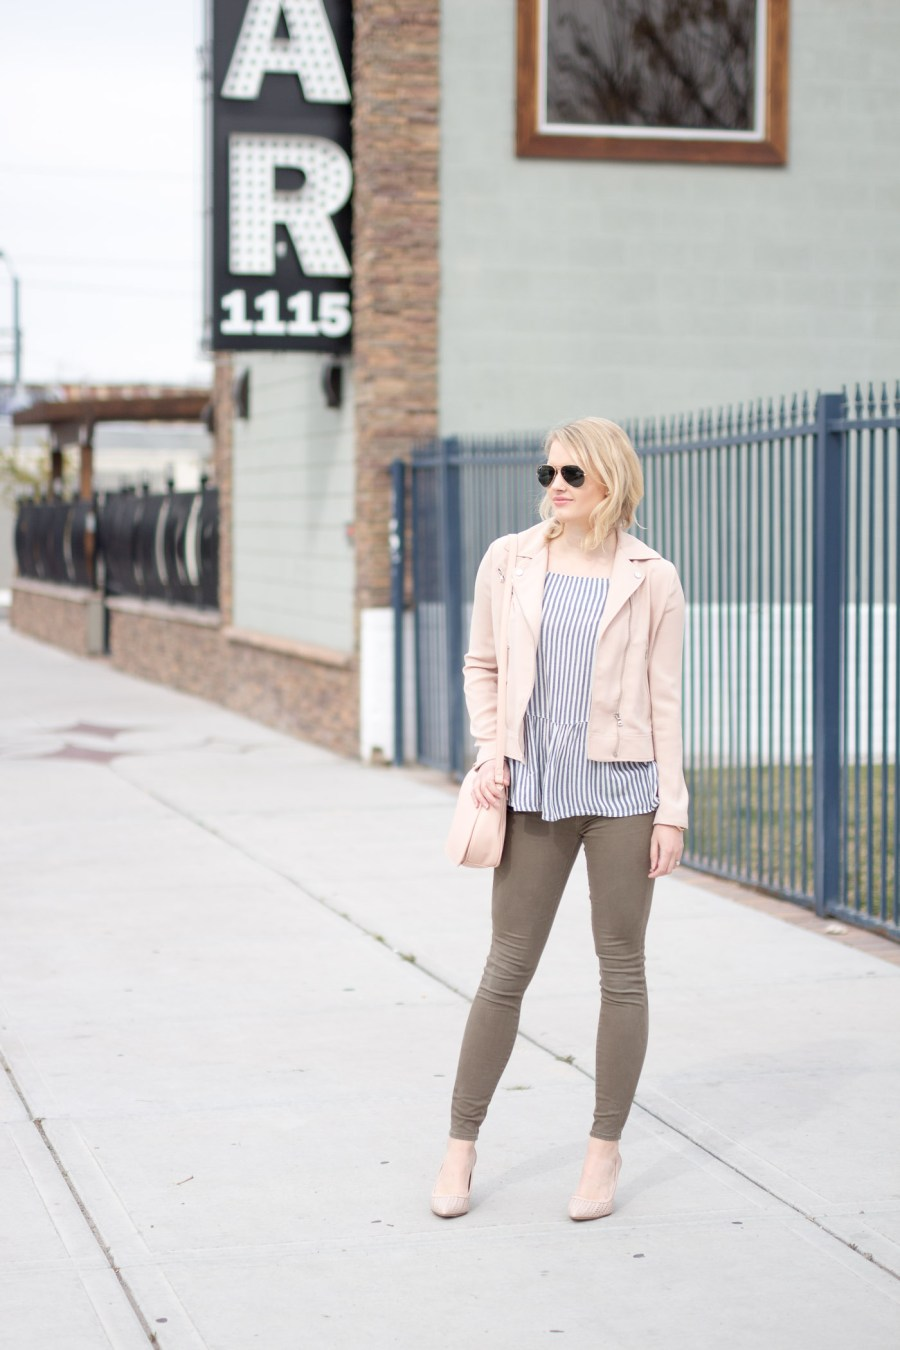 Springs fashion, How To Use the LIKEtoKNOW.it App, spring outfit idea, Treats and Trends, fashion blog, Jamie Kamber